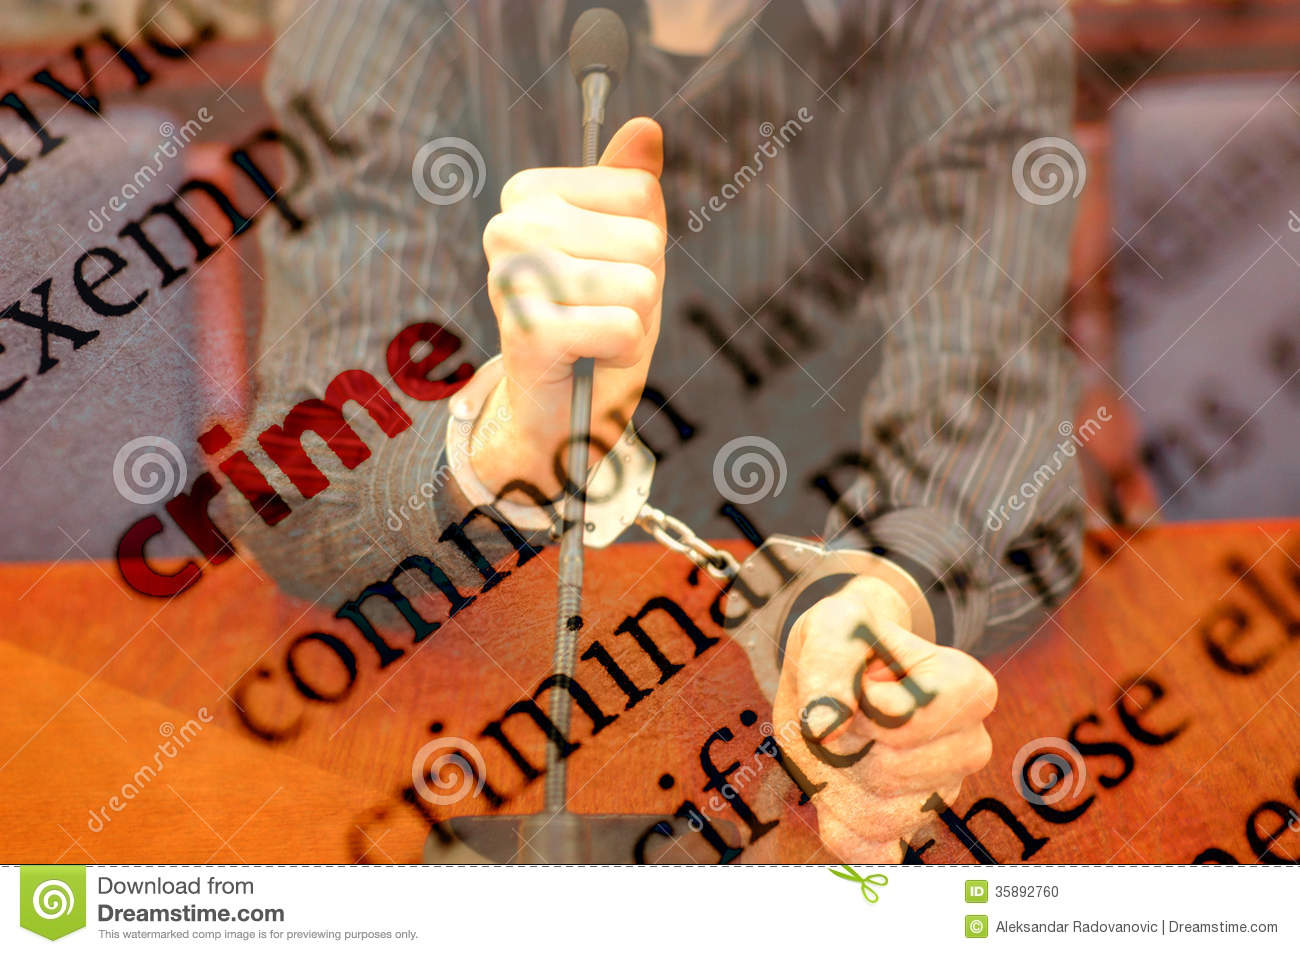 definition of intention in criminal law Specific intent is the most severe criminal intent that can apply to any crime that is not murder unfortunately, it is difficult to define specific or general in a court of law, due to a lack of specificity in criminal statutes.